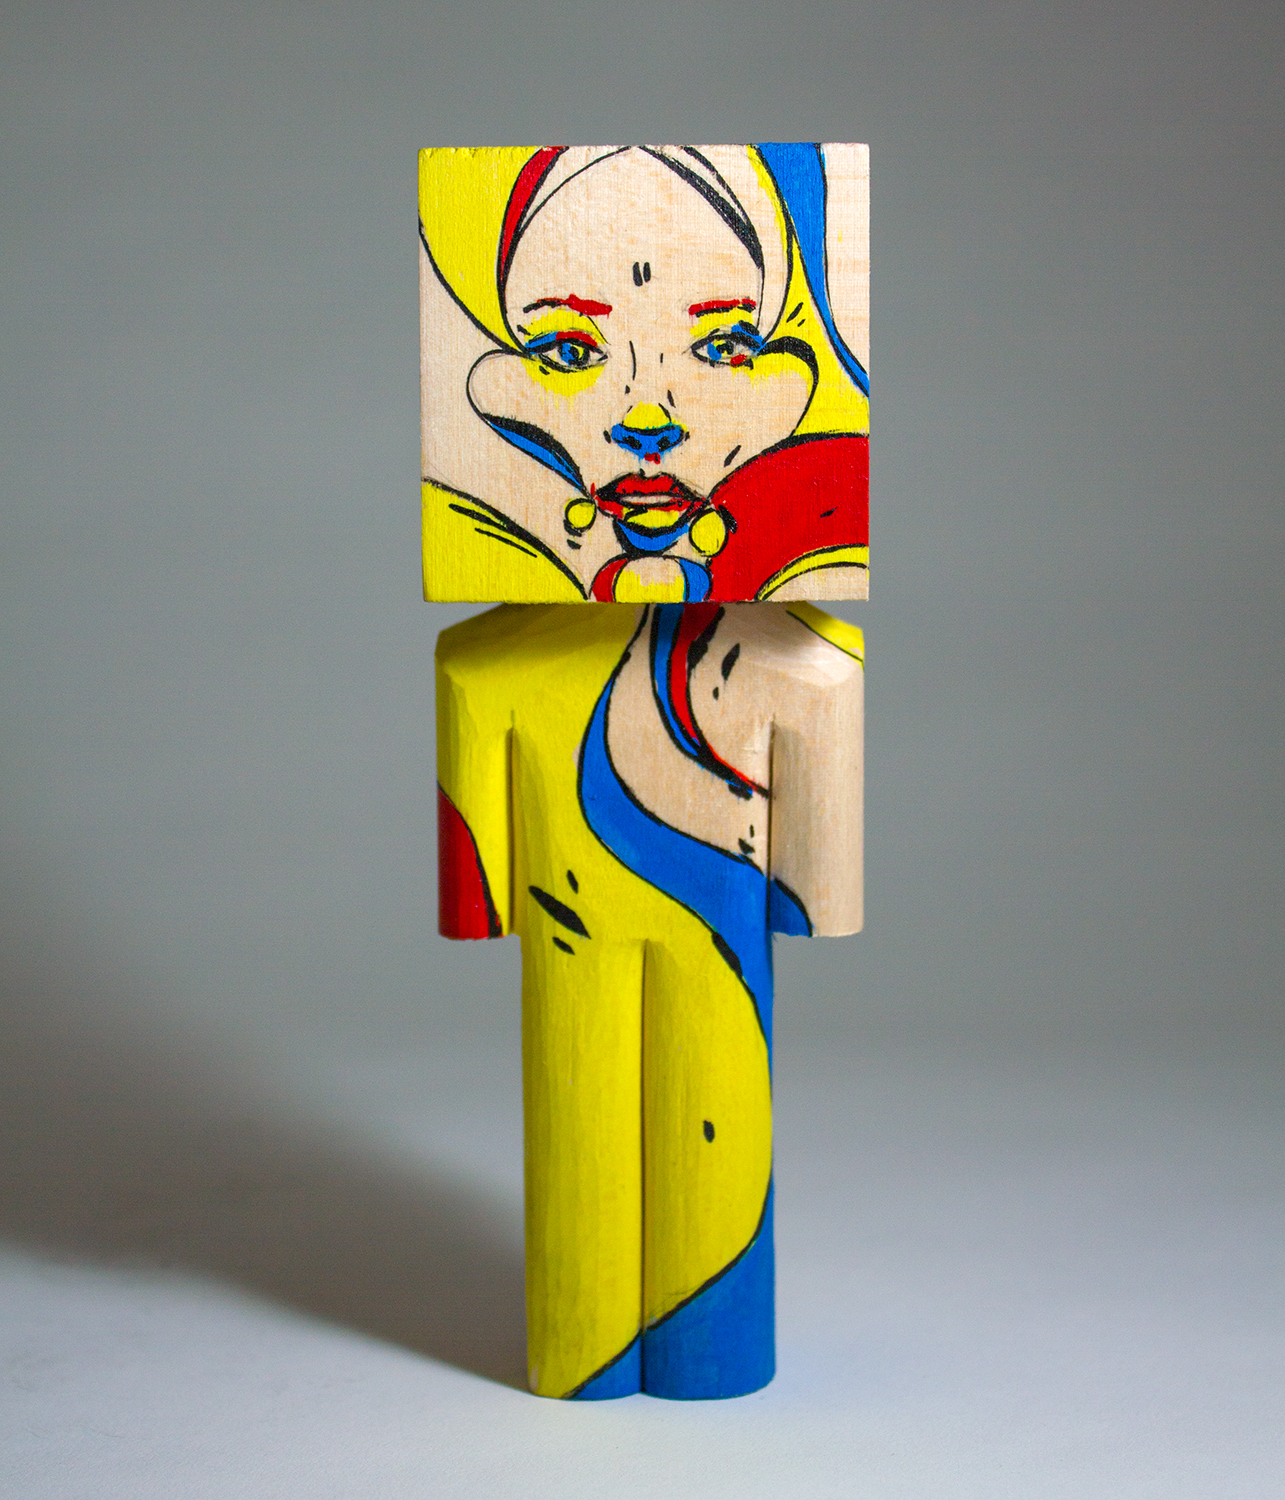 Jubilee in collaboration Sanithna wood and acrylic 5.75 x 2 x 2 inches CSK 023G